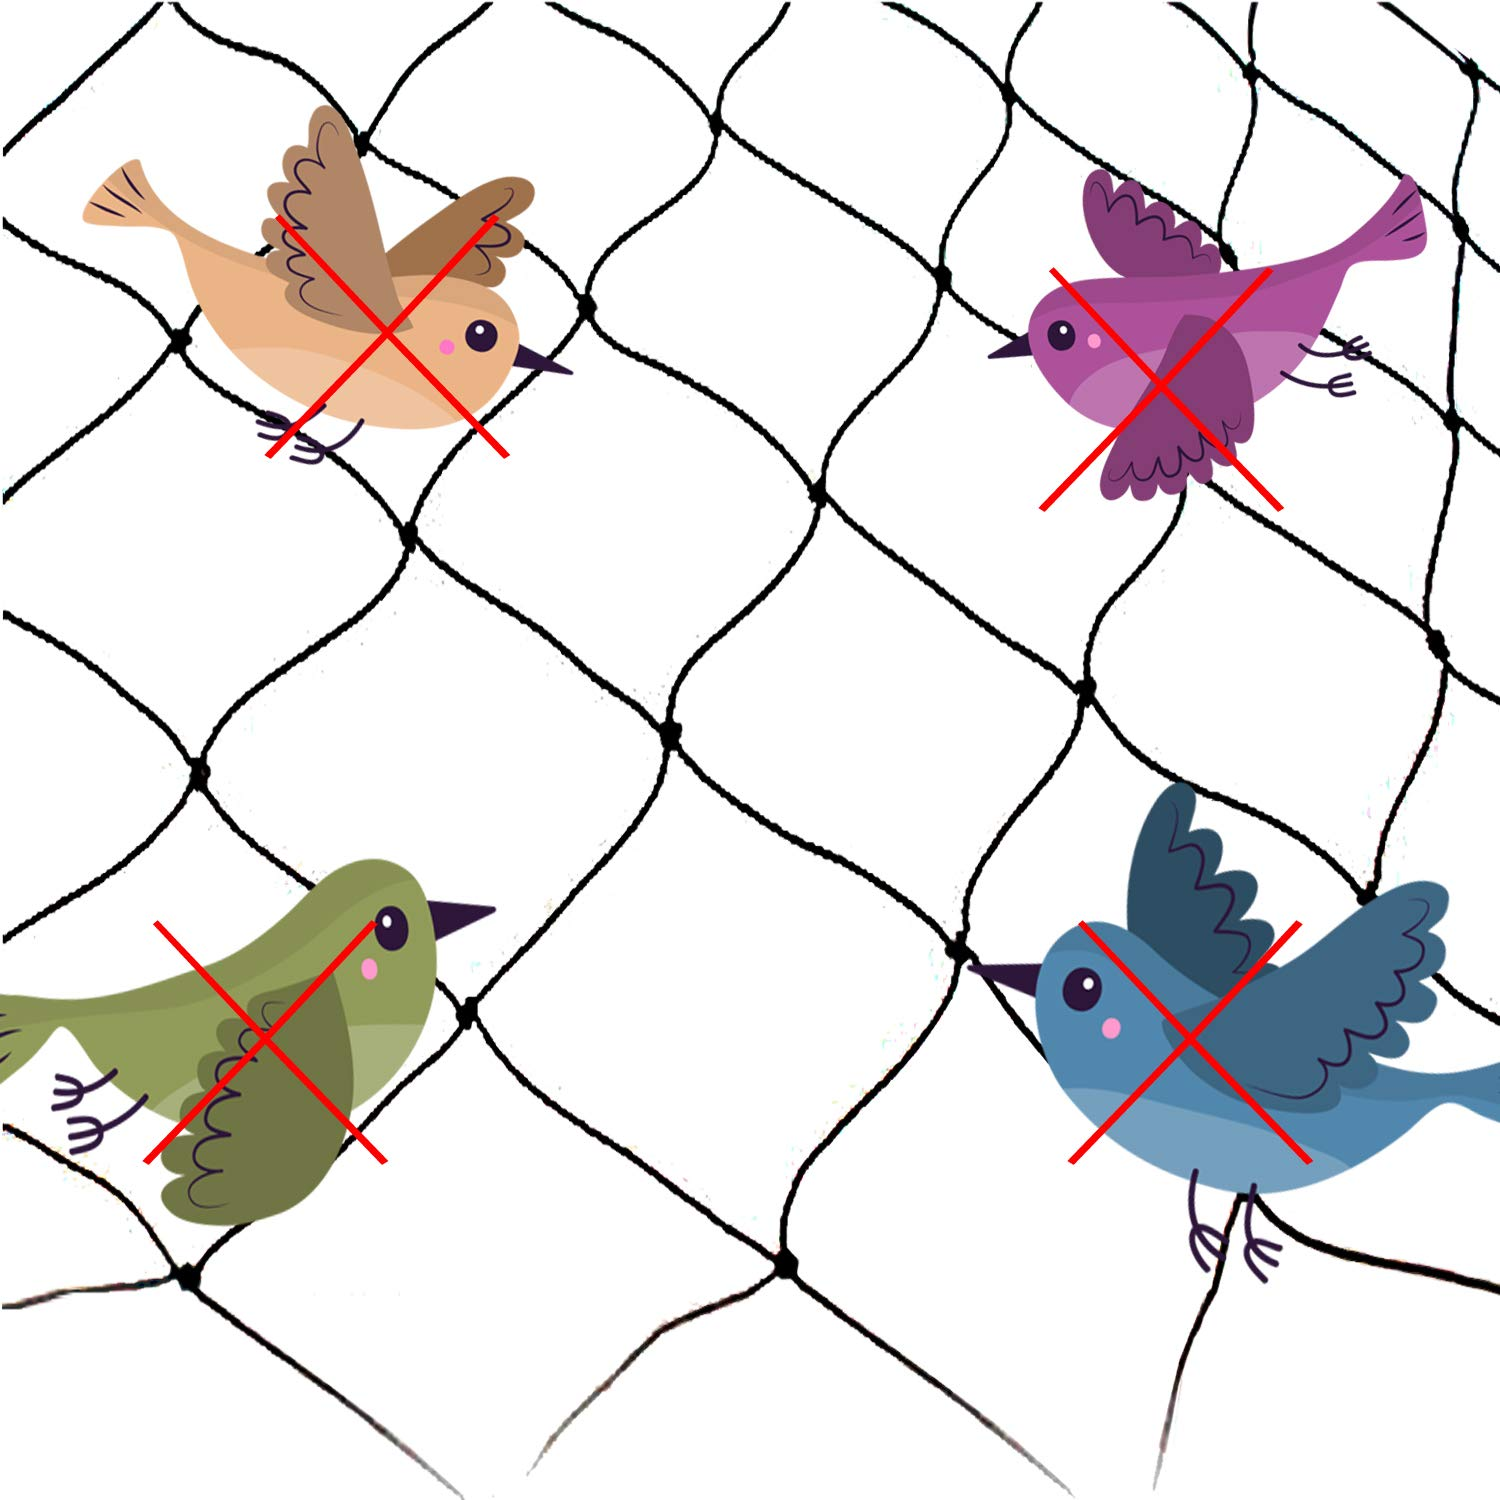 25' x 50' Net Netting for Bird Poultry Aviary Game Pens Economical Bird Netting-Protect Blueberry,Plants and Vegetables from Ows New 2.4'' Square Mesh Size